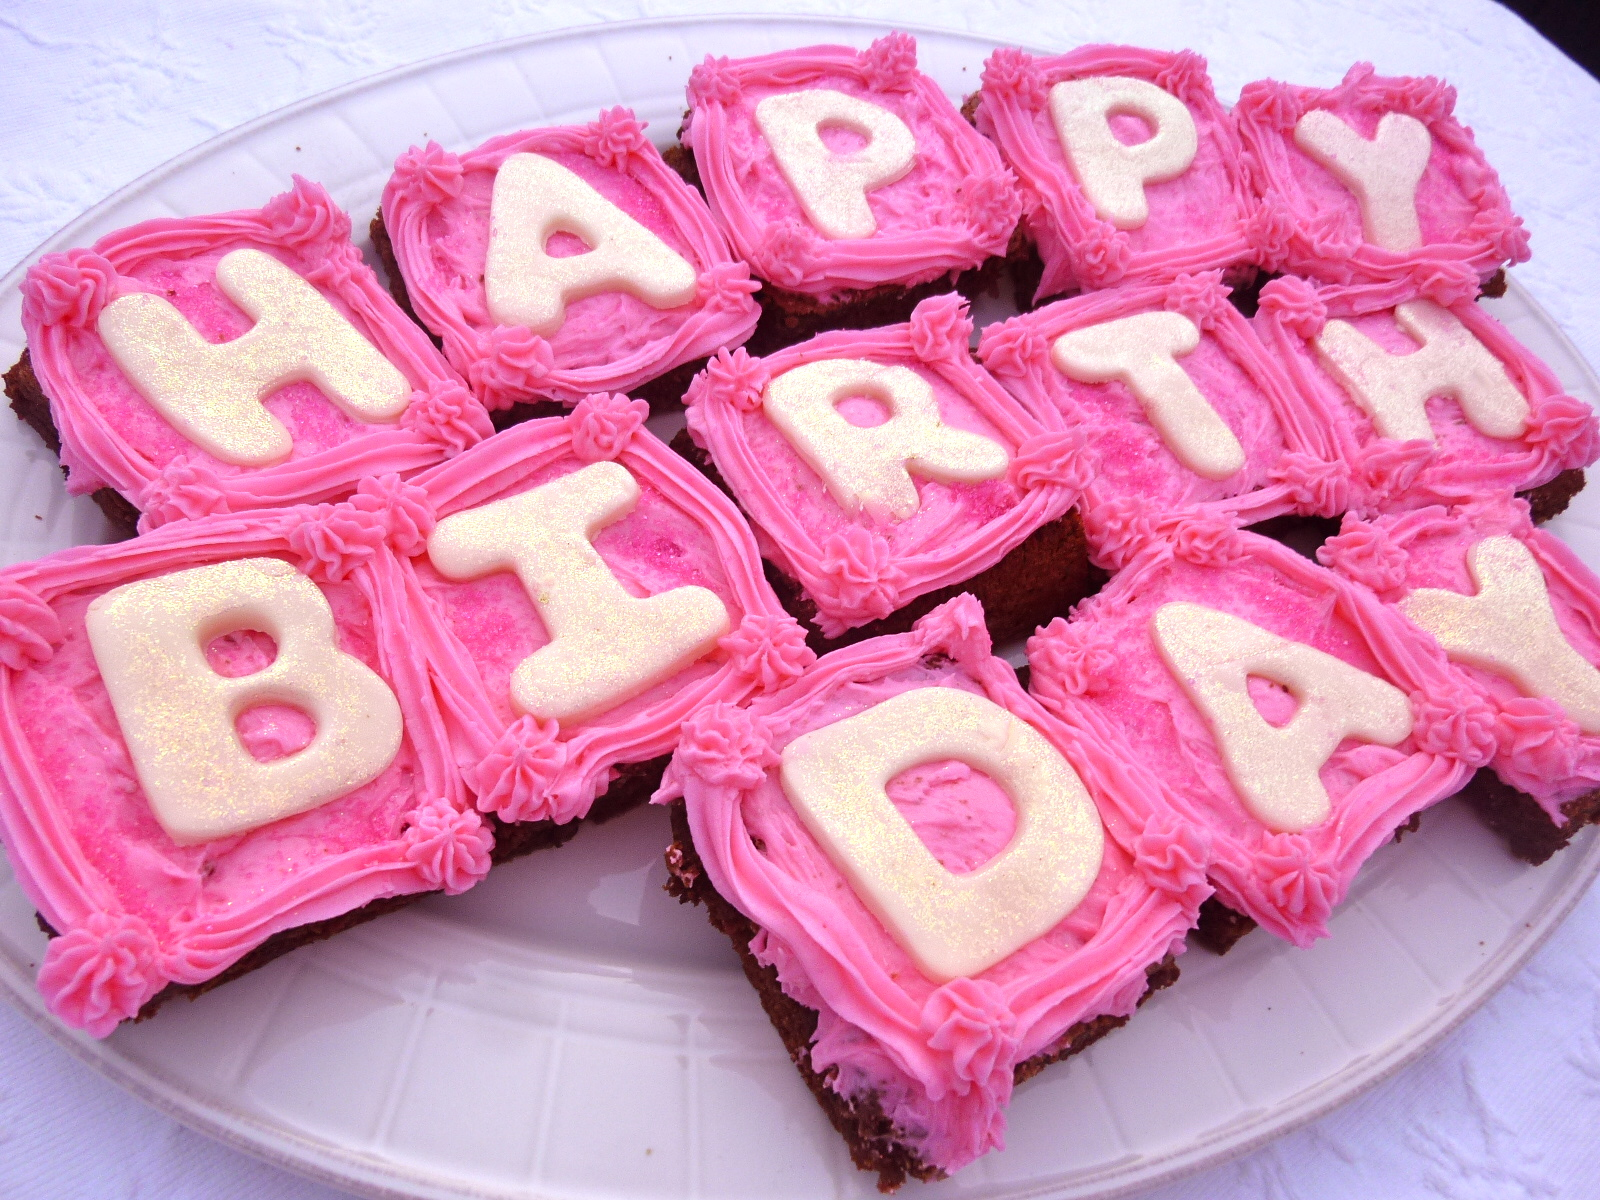 http://2.bp.blogspot.com/-rEKYRVIbI60/Tx9NkKBx2yI/AAAAAAAAICM/6FXTh8aur_g/s1600/Happy-Birthday-Brownies-With-Pink-Raspberry-Buttercream.JPG